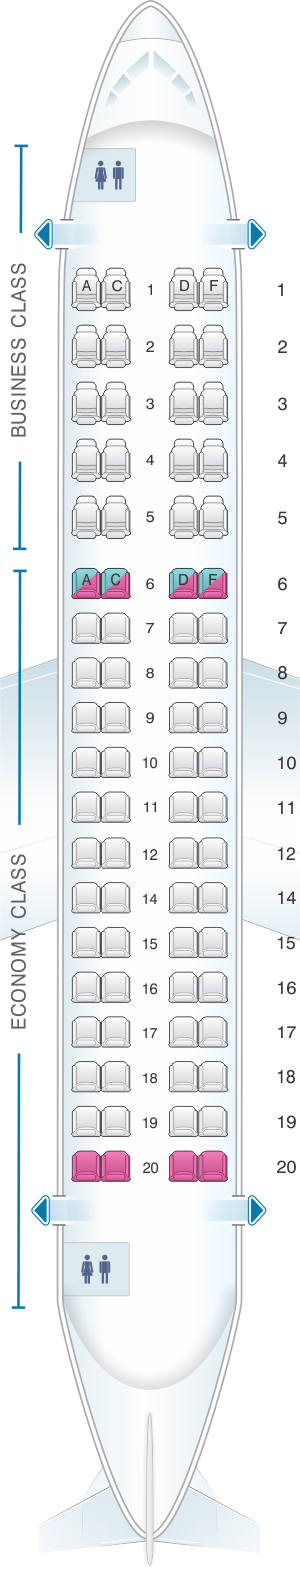 Seat map for HOP! Embraer 170